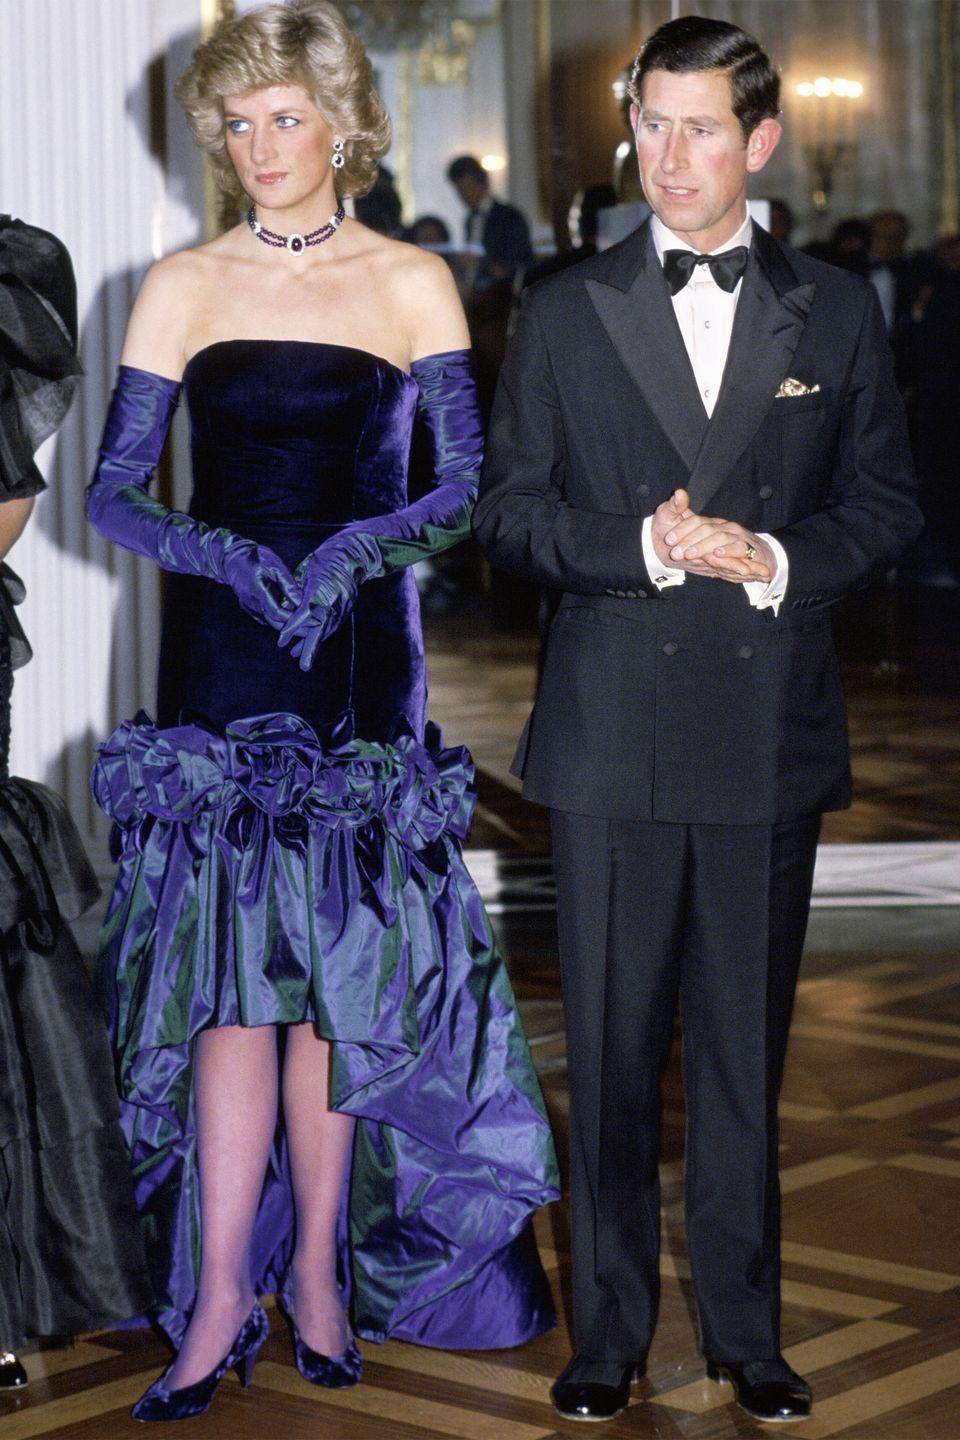 <p>In a black-and-blue dress at the Munich Opera House in Germany. </p>